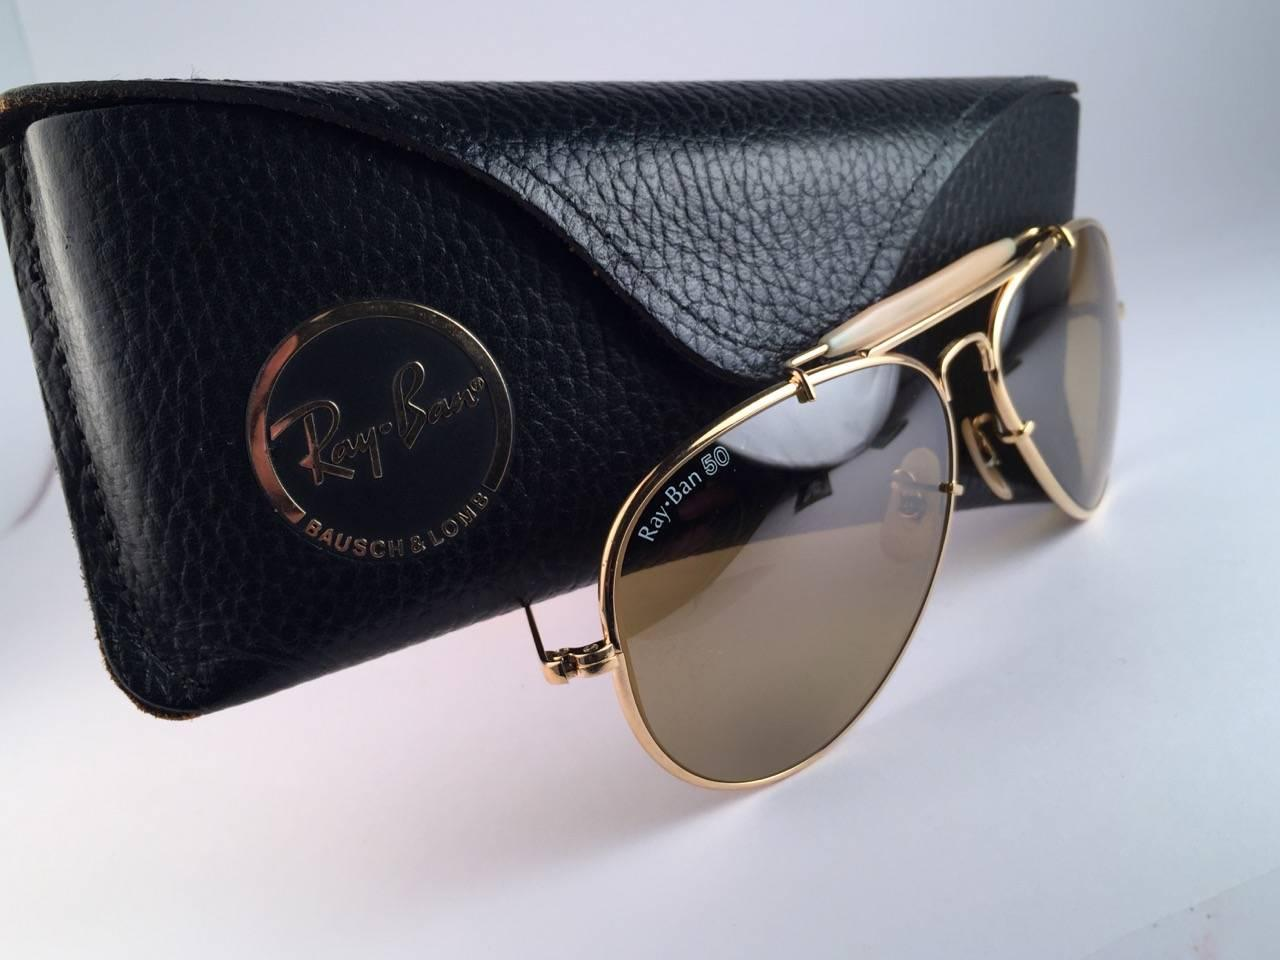 e5513c2a New Ray Ban The General 50 Collectors Item George Michael Faith Tour 58Mm  USA